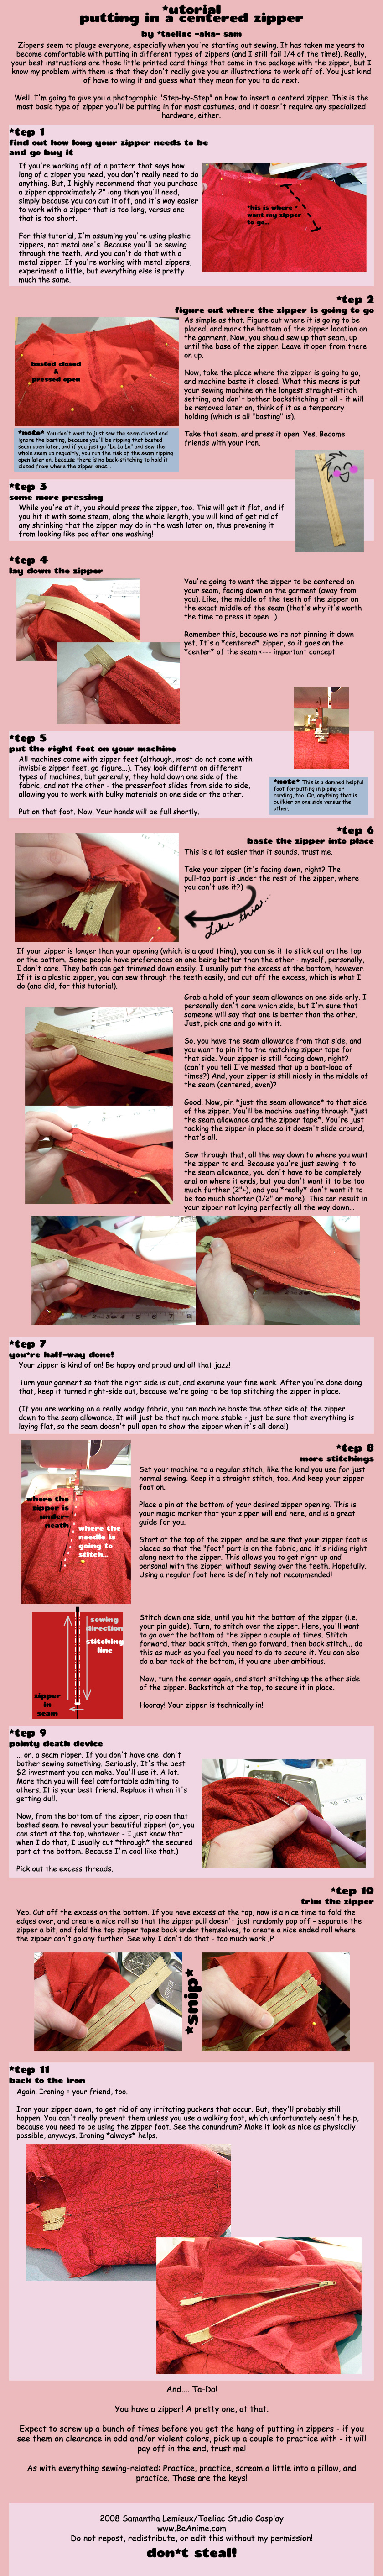 Tutorial: Centered zippers by taeliac